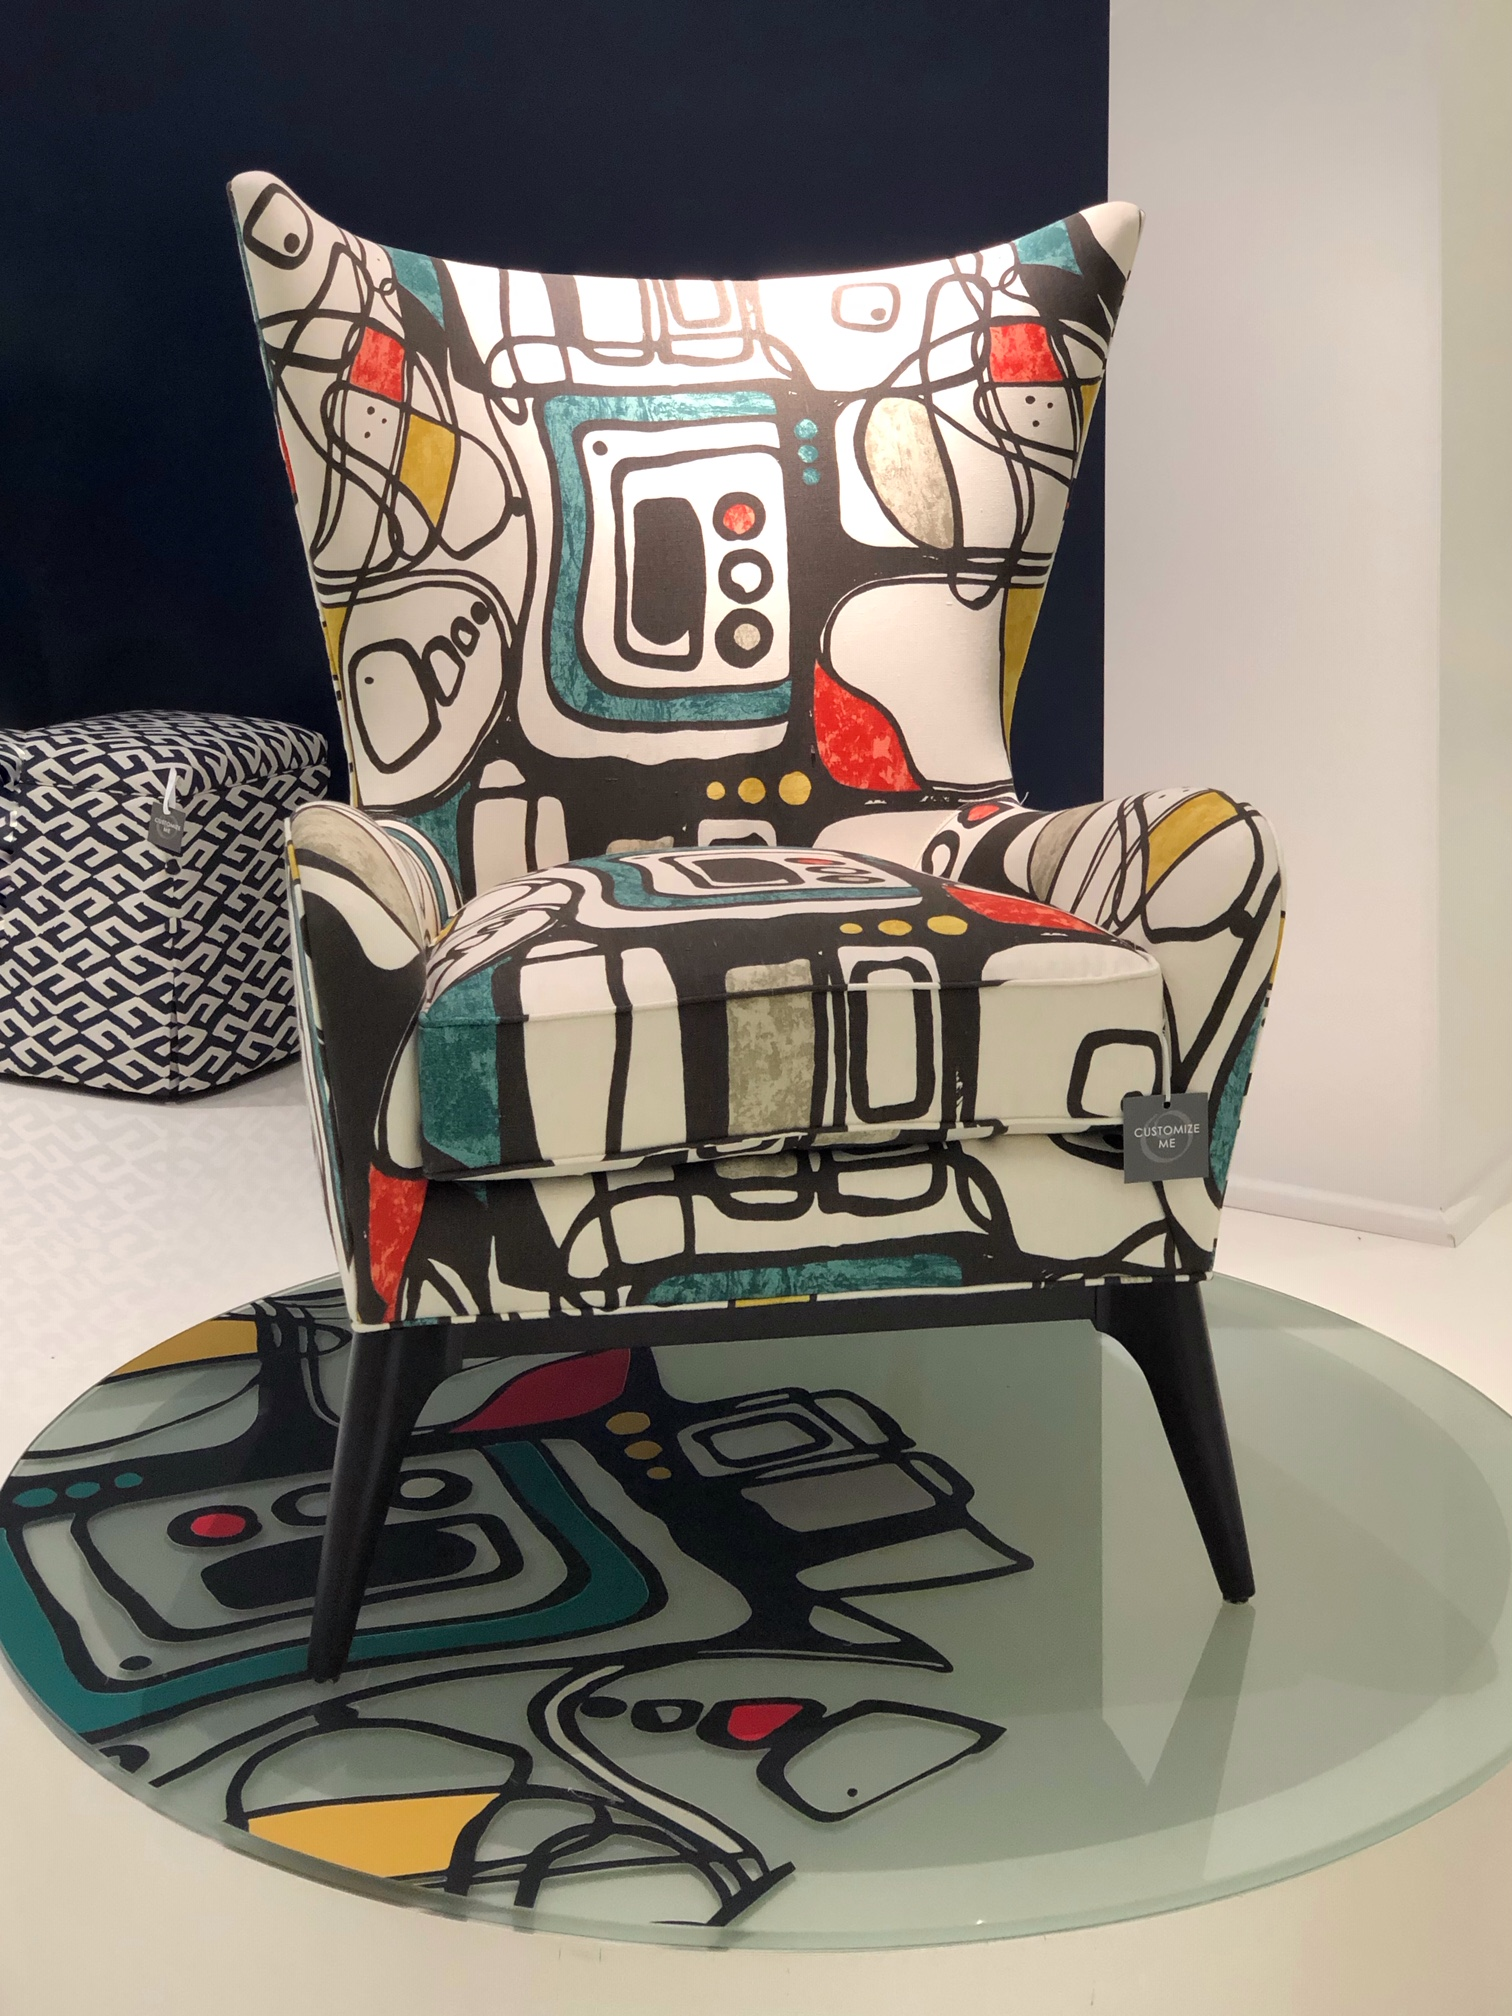 60's inspired patterned fabric on chair